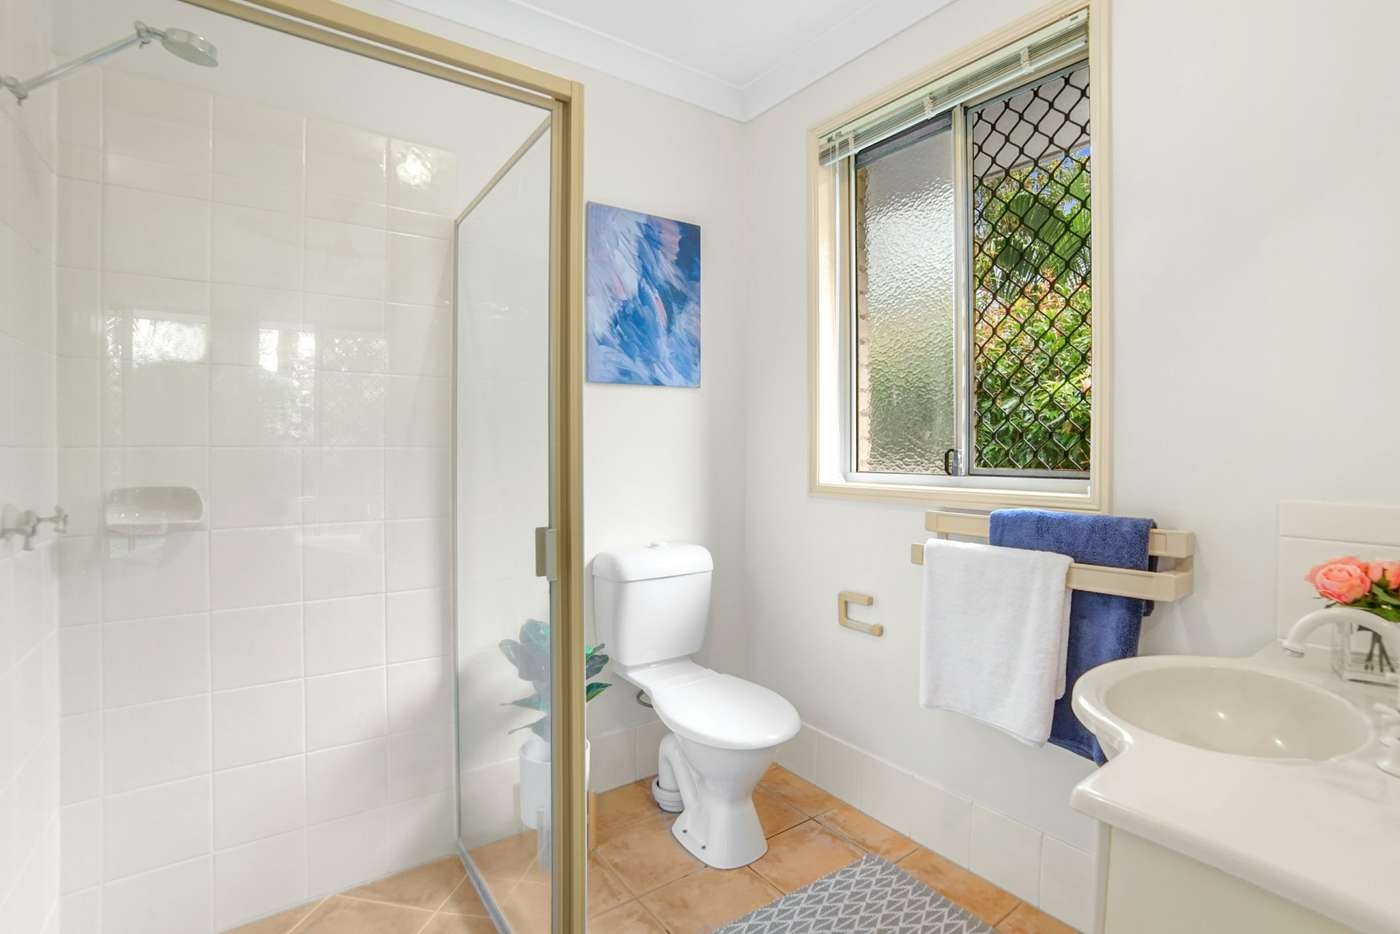 Seventh view of Homely house listing, 11 Taringa Street, Brinsmead QLD 4870